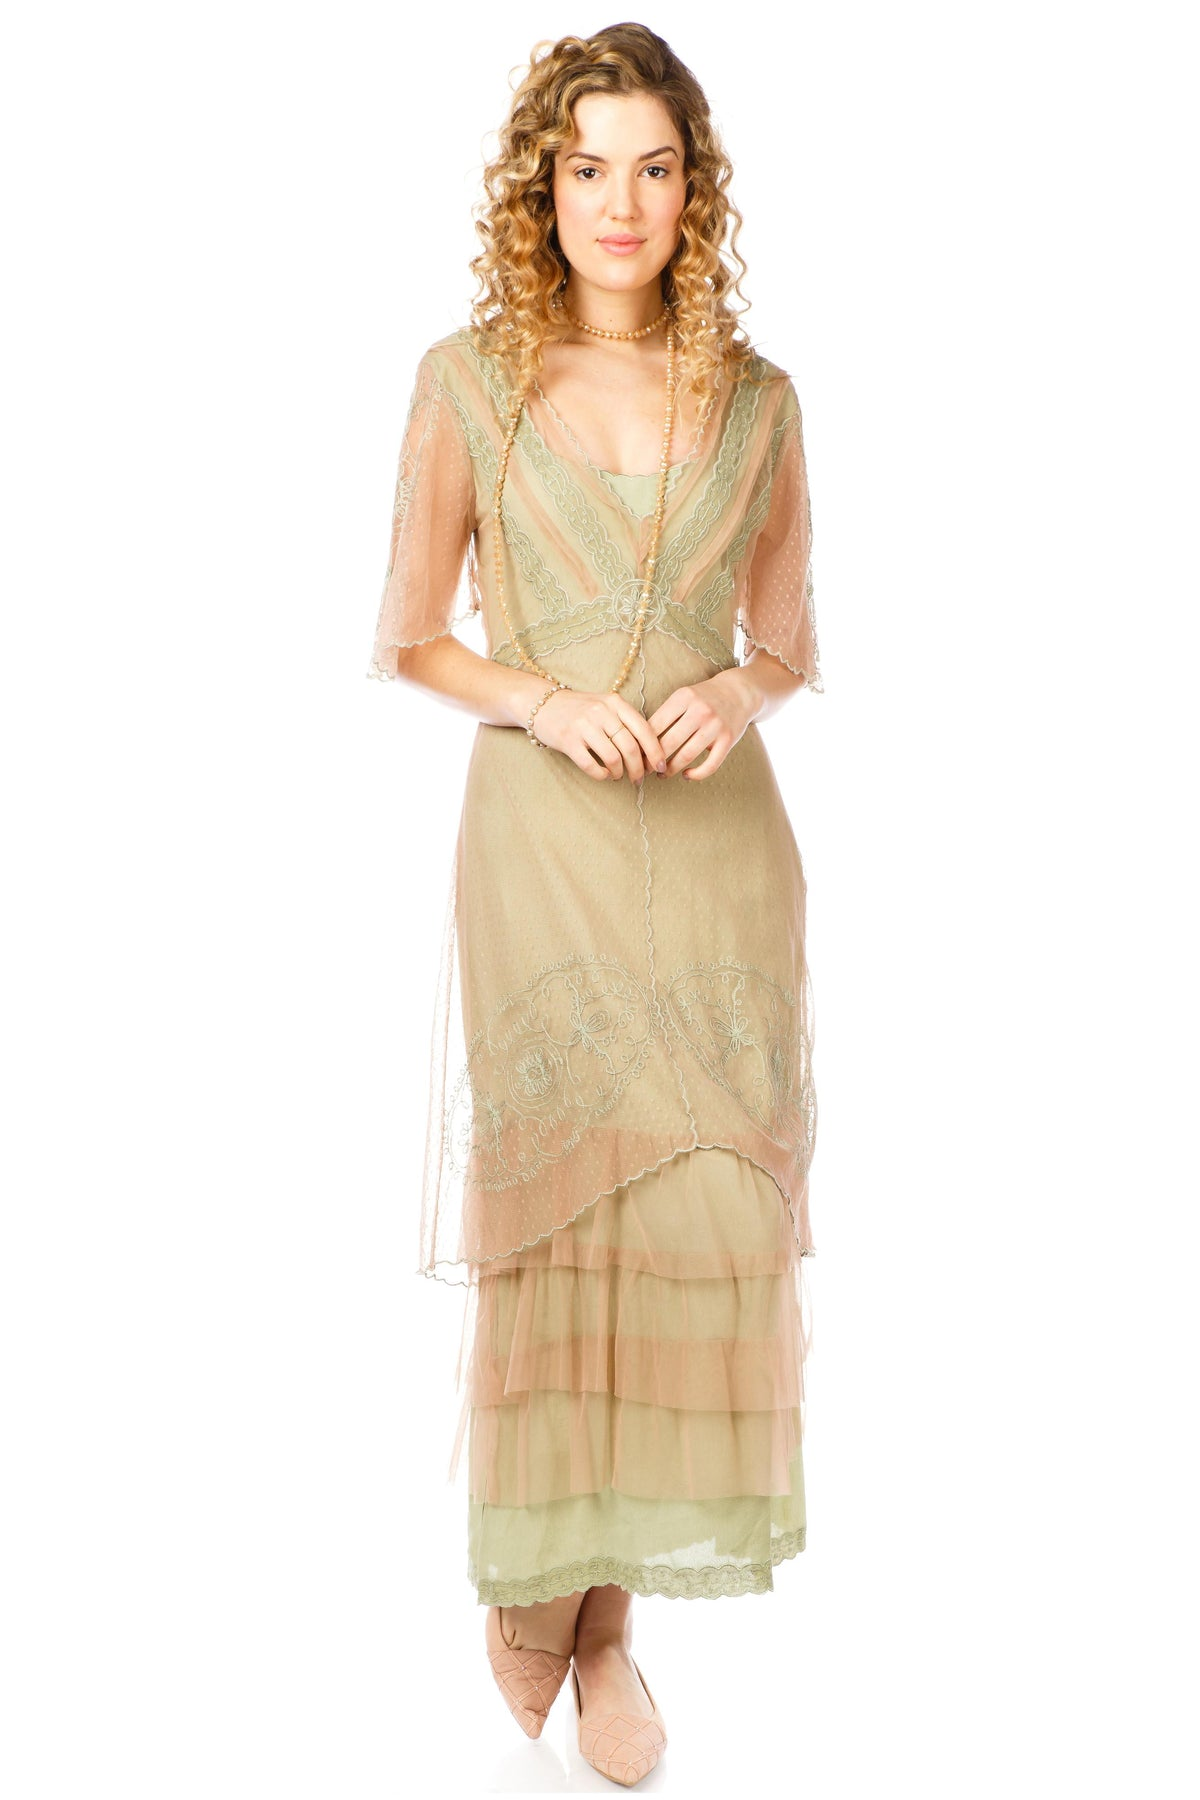 1920s Style Dresses, 20s Dresses Sylvia 1920s Titanic Style Dress in Sage $288.00 AT vintagedancer.com